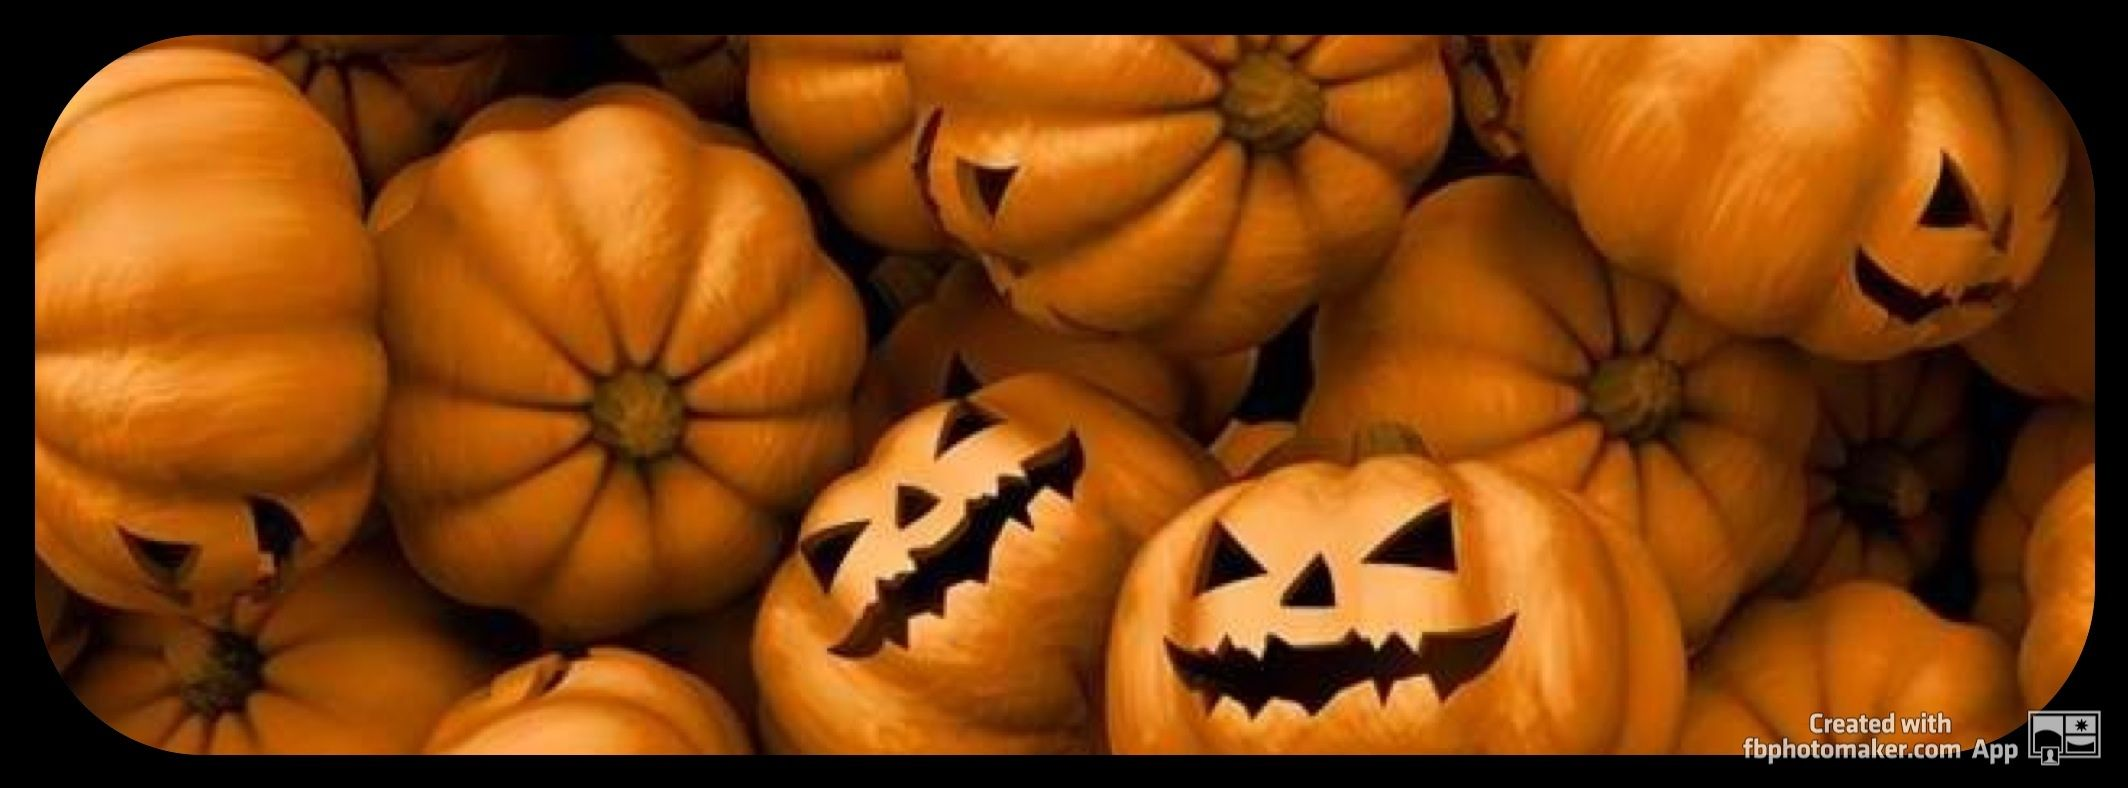 pumpkins, halloween, simple facebook timeline cover photo | facebook